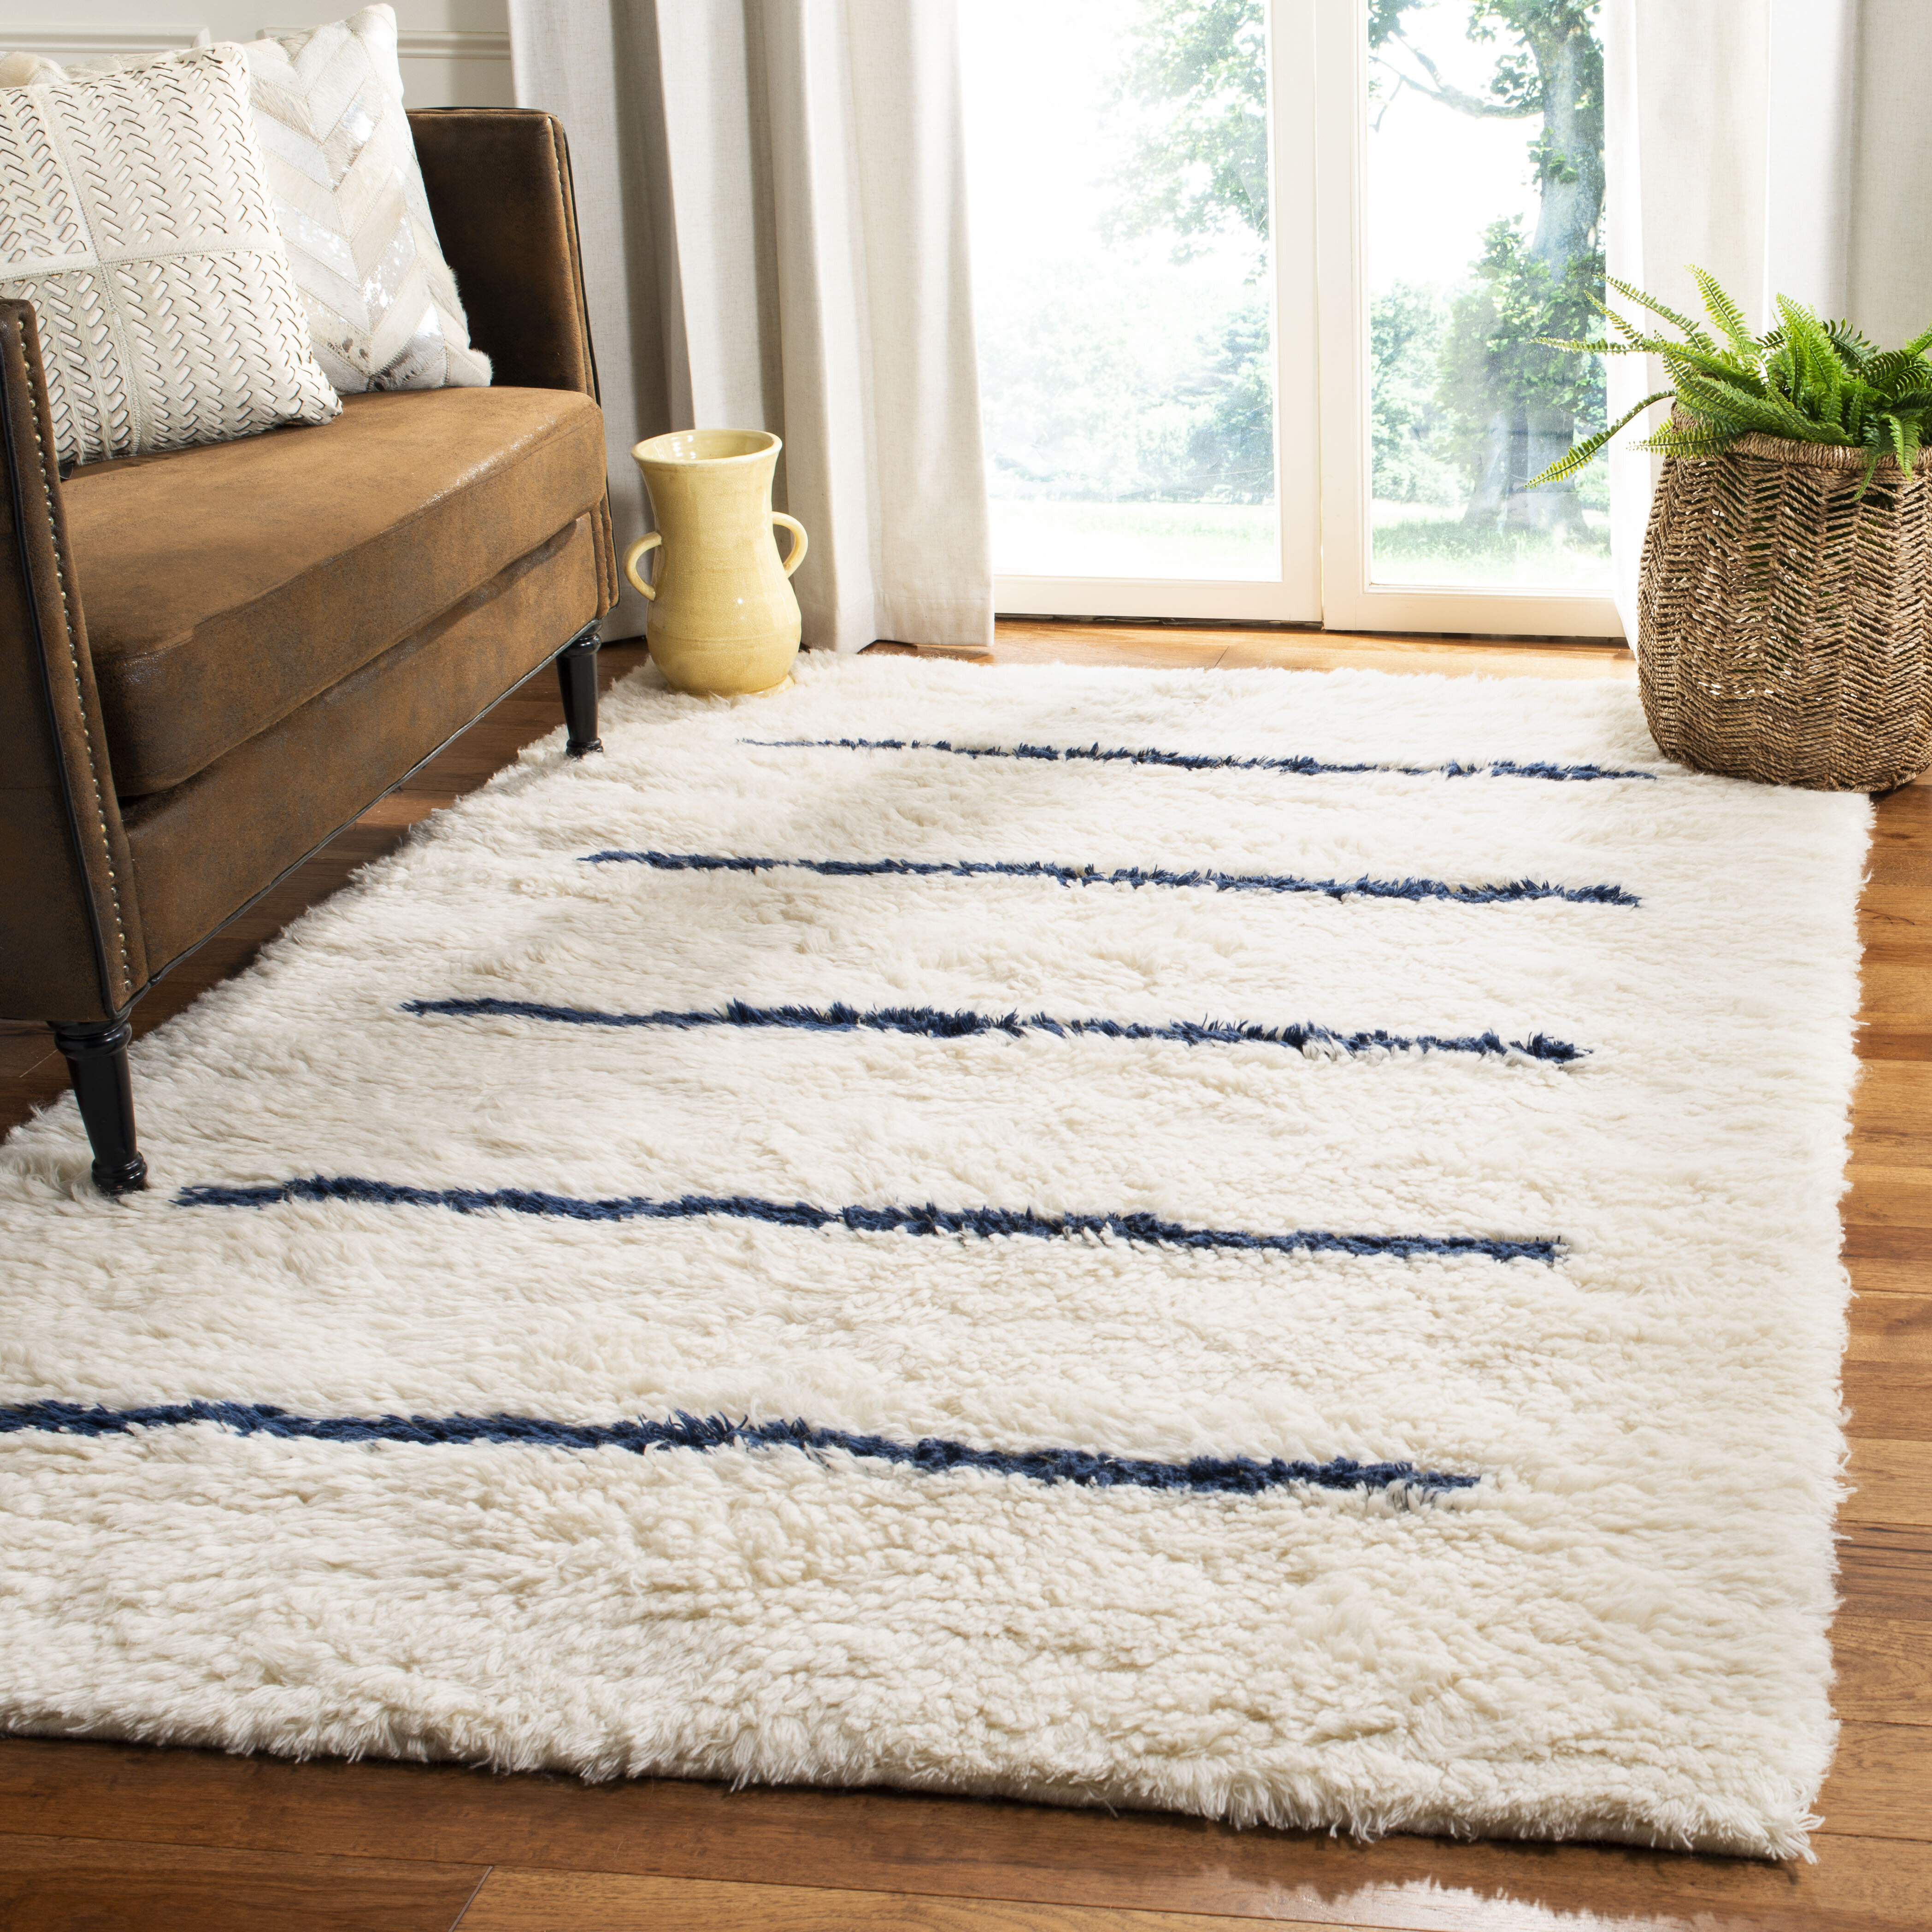 Aten Striped Hand Knotted Wool Ivory Navy Area Rug Reviews Allmodern